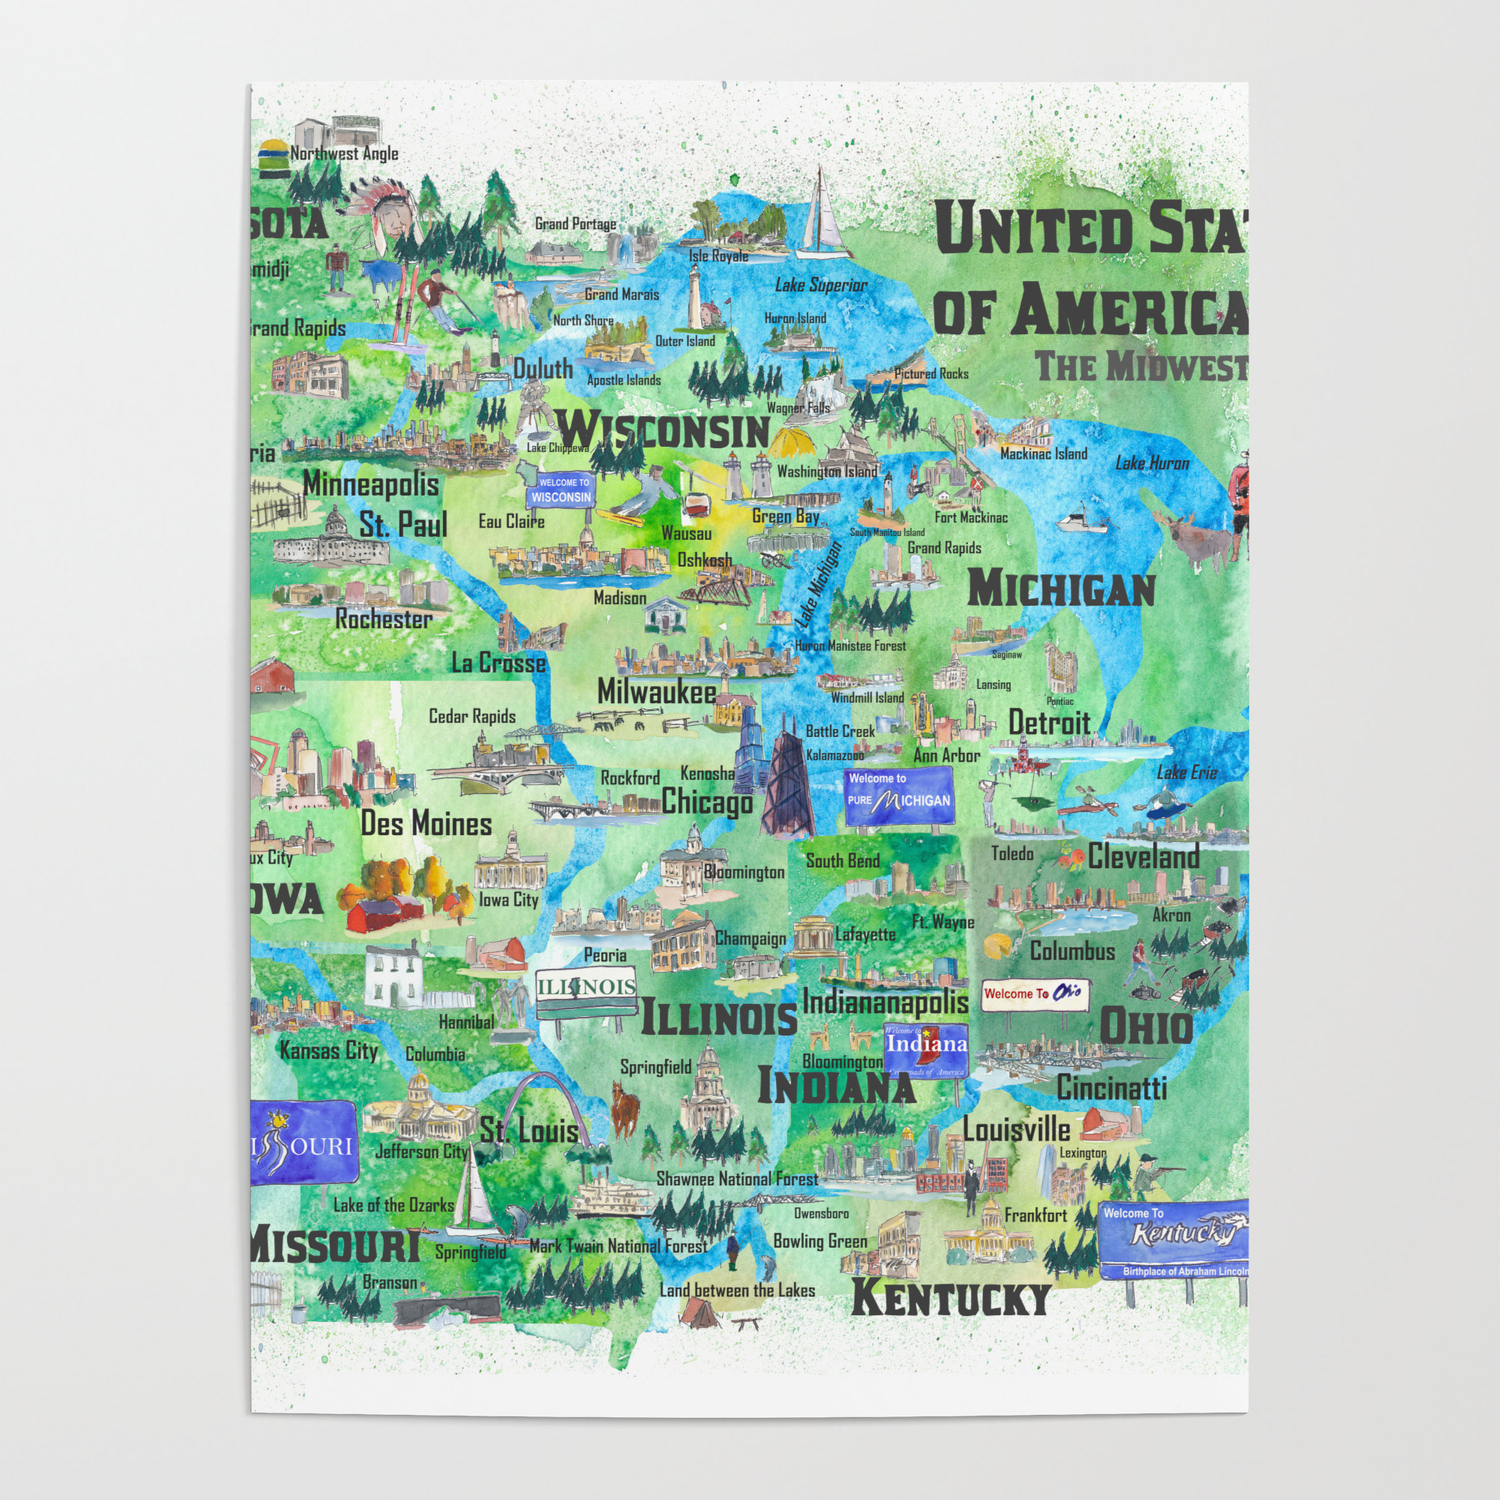 USA Midwest States Travel Map MN WI MI IA KY IL IN OH MO With_Highlights  Poster by artshop77